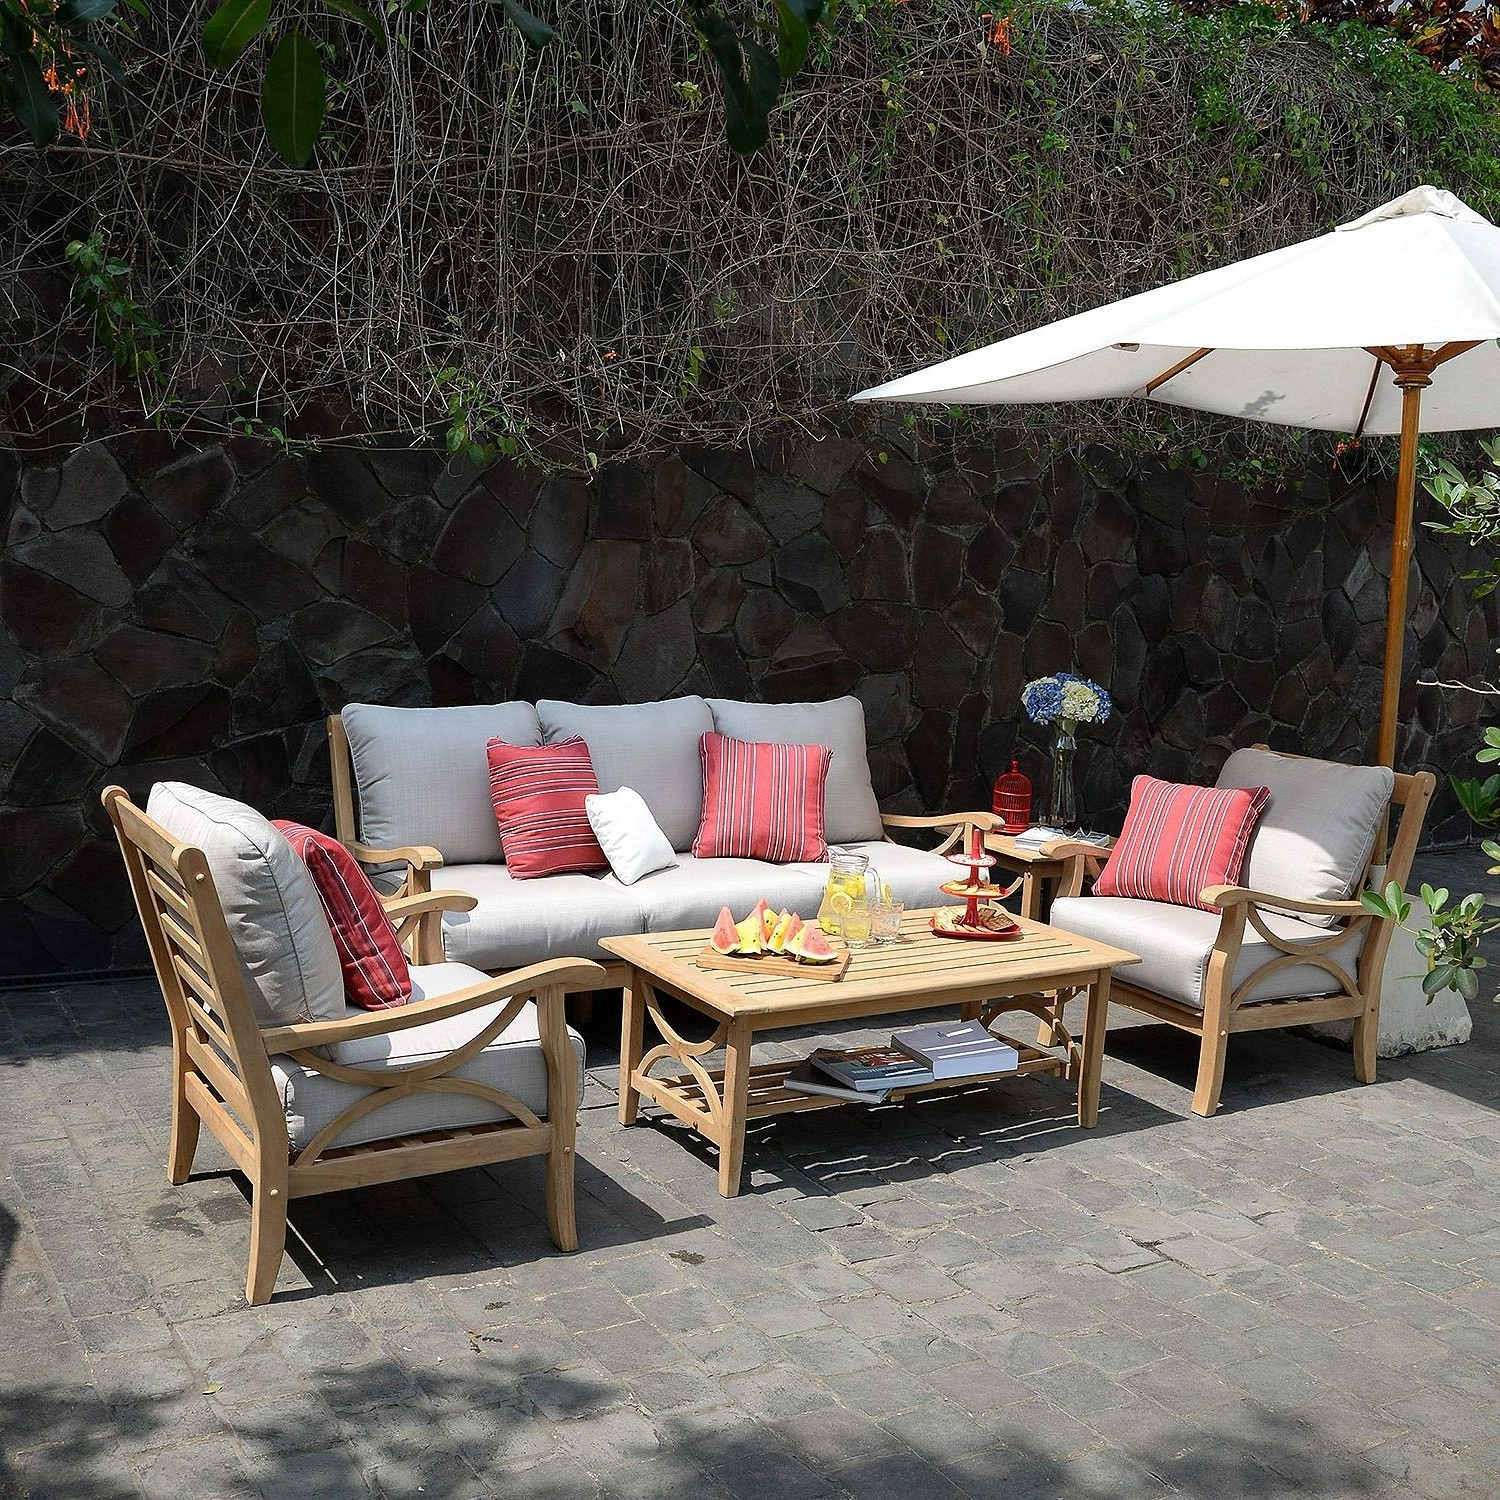 Sams Club Teak Patio Furniture F81X In Excellent Home Decor With Regard To Recent Teak Patio Conversation Sets (View 10 of 15)